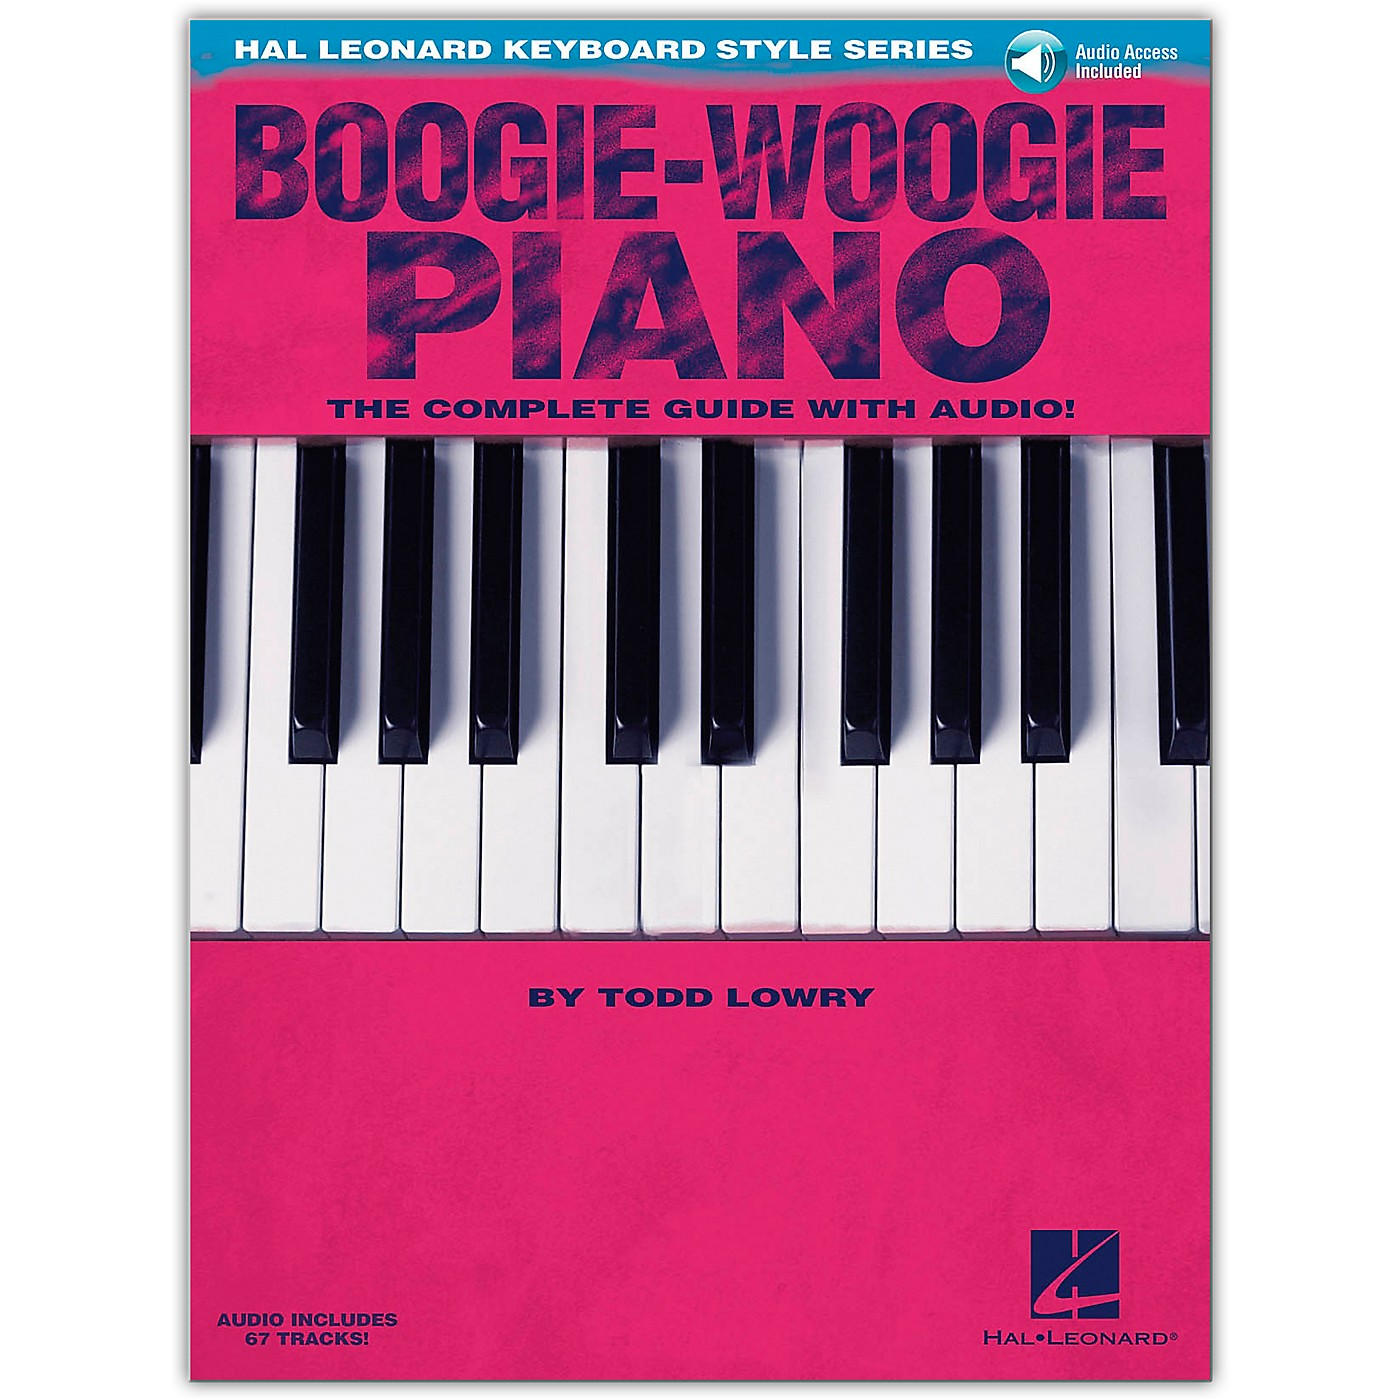 Hal Leonard Boogie-Woogie Piano  The Complete Guide Book/Online Audio from Hal Leonard Keyboard Style Series thumbnail